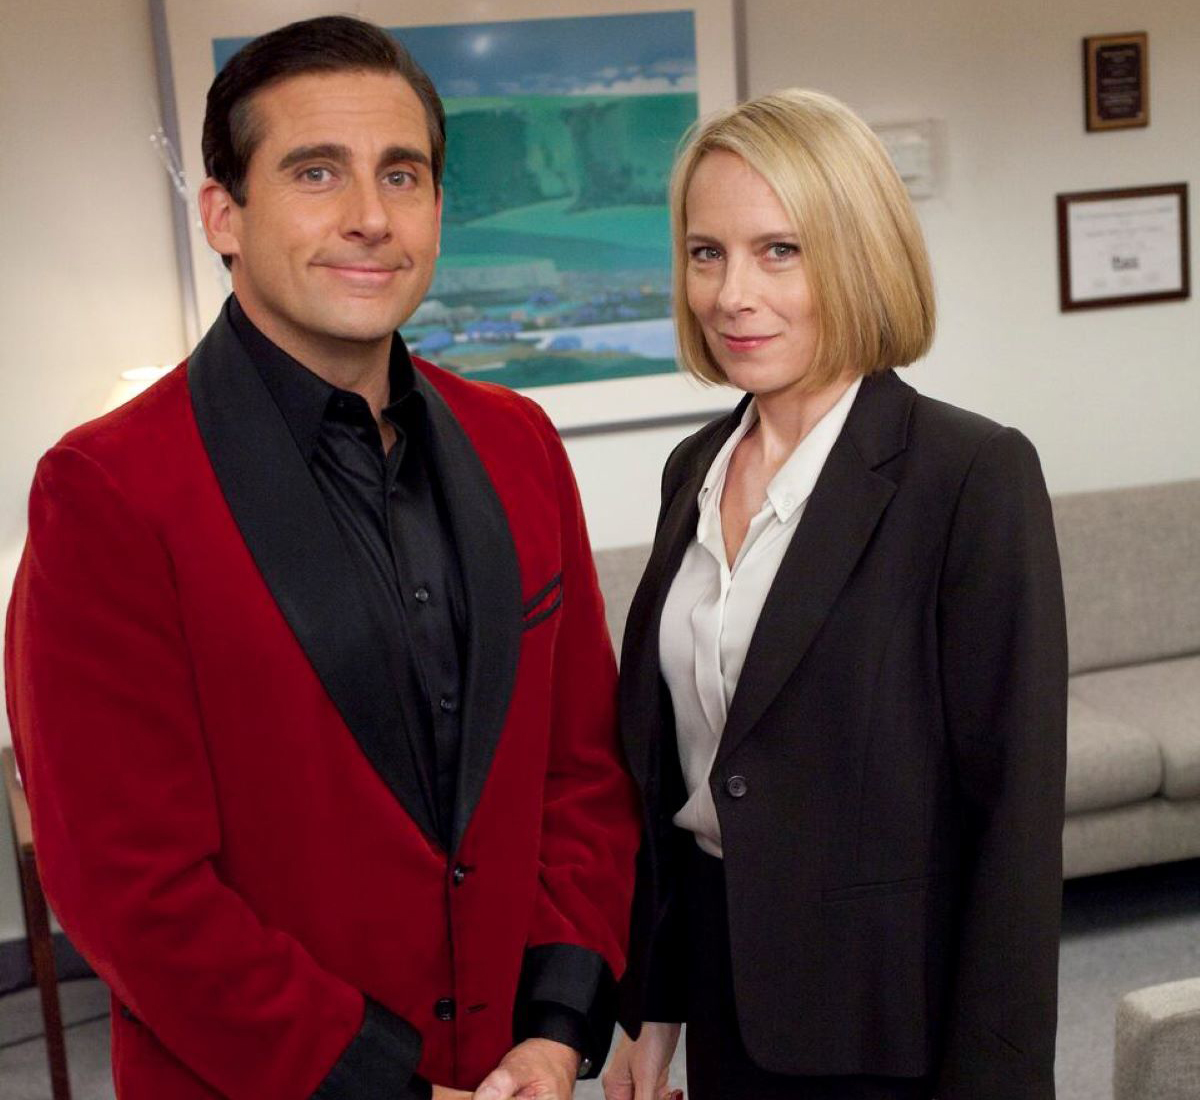 Michael Scott and Holly